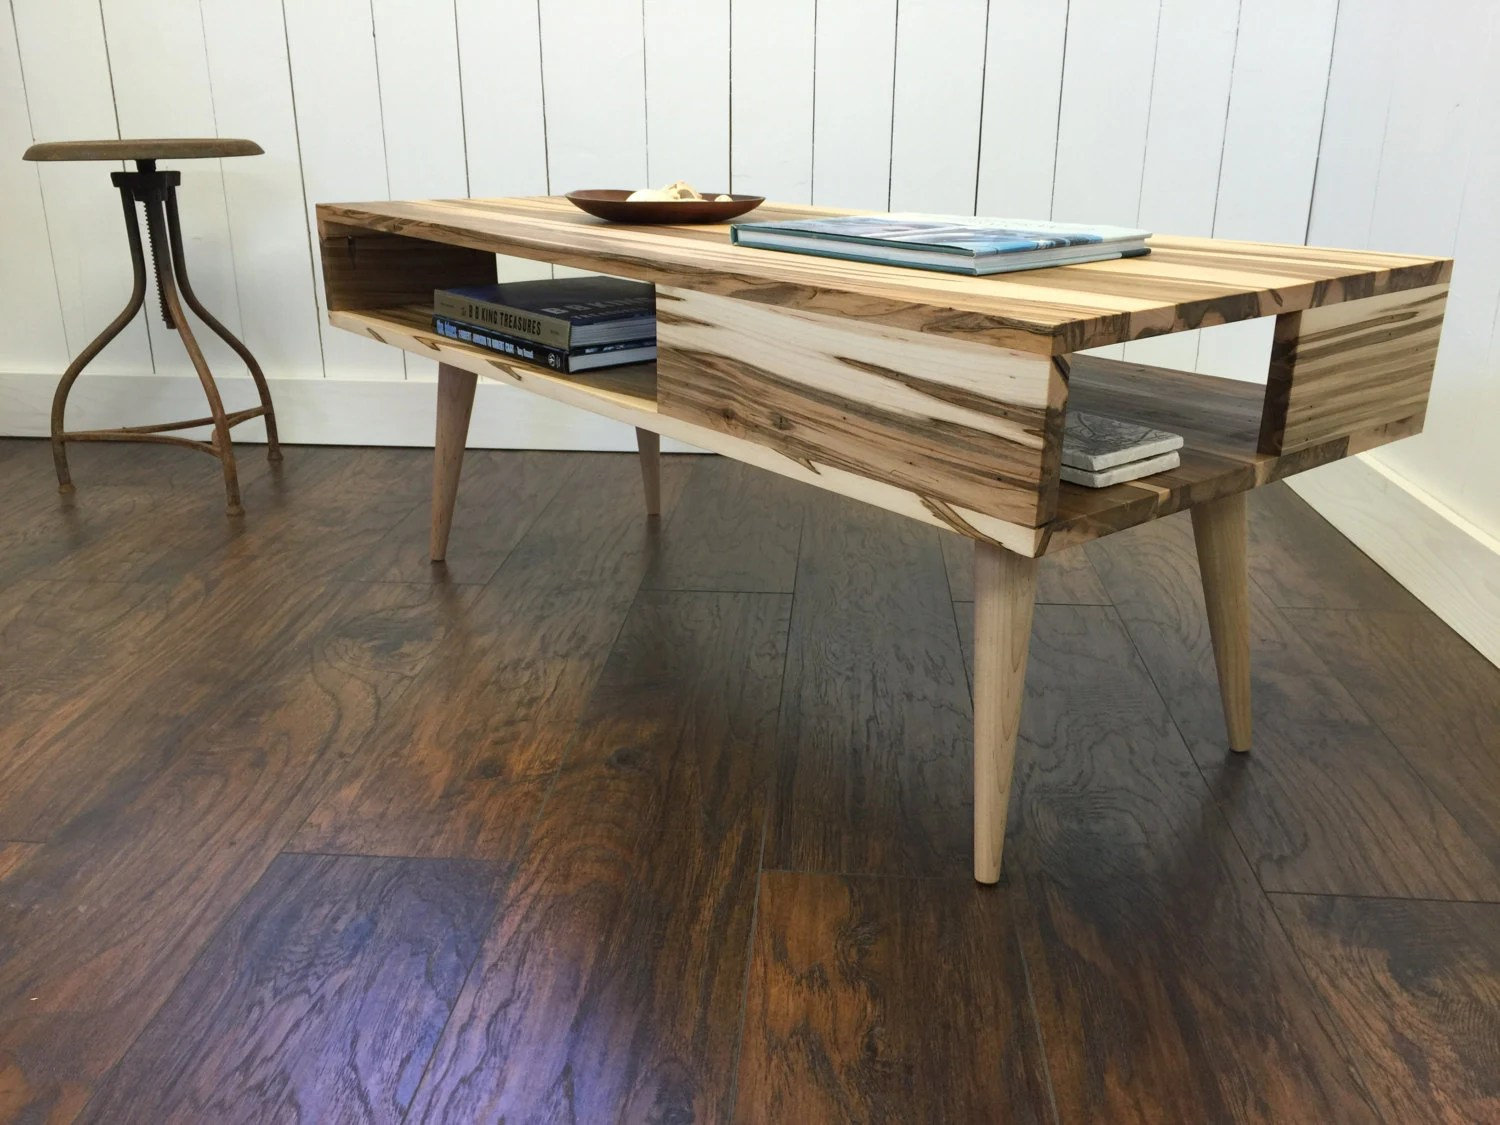 Modern Coffee Table With Storage Thin Man Mid Century Modern Coffee Table With Storage Featuring Wormy Maple Tapered Wood Legs